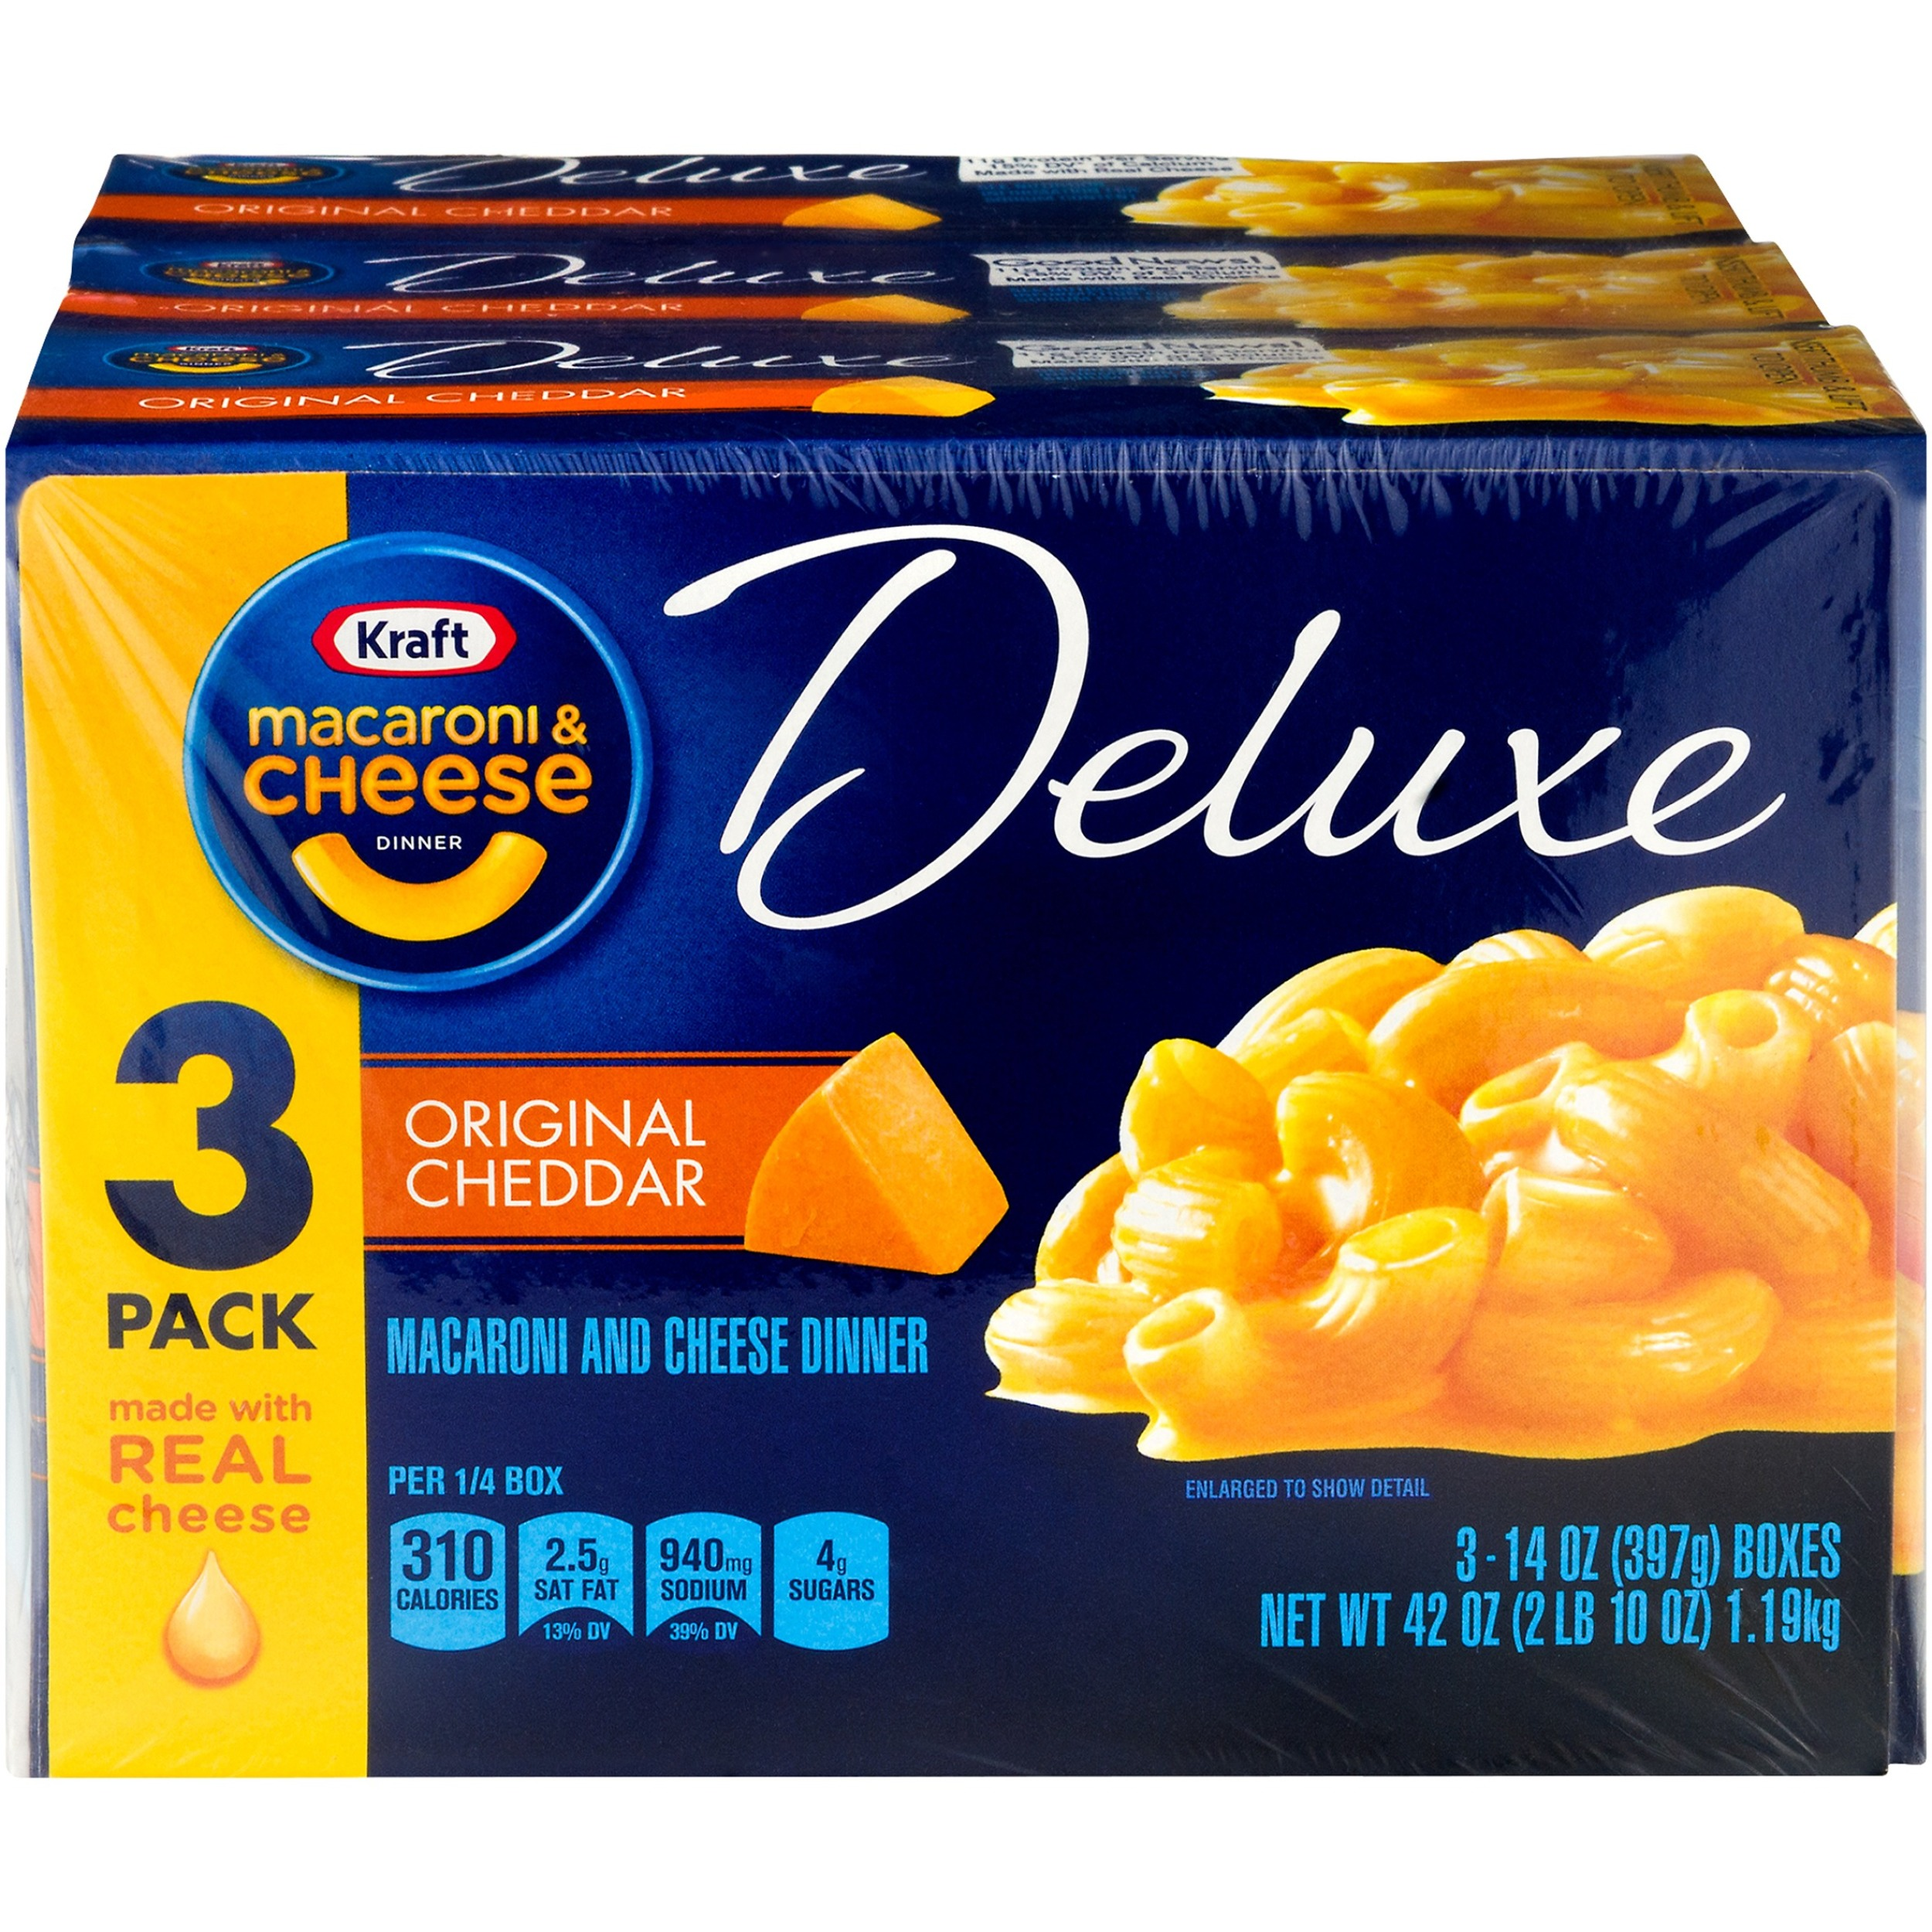 Kraft Deluxe Original Cheddar Macaroni & Cheese Dinner Dry, 3 - 14 oz Boxes